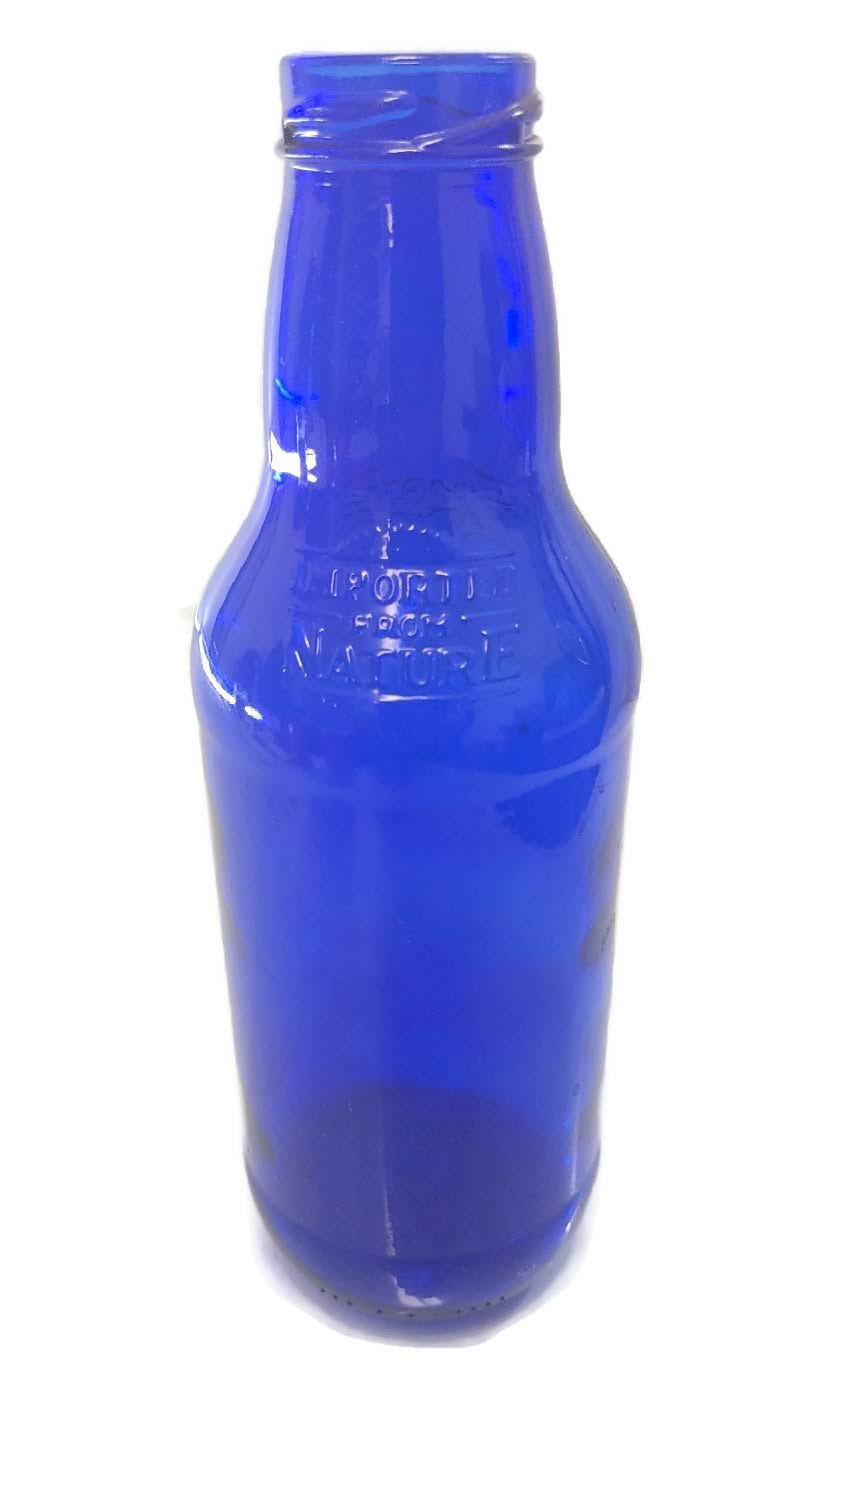 Imported from Nature - Cobalt Blue Bottle